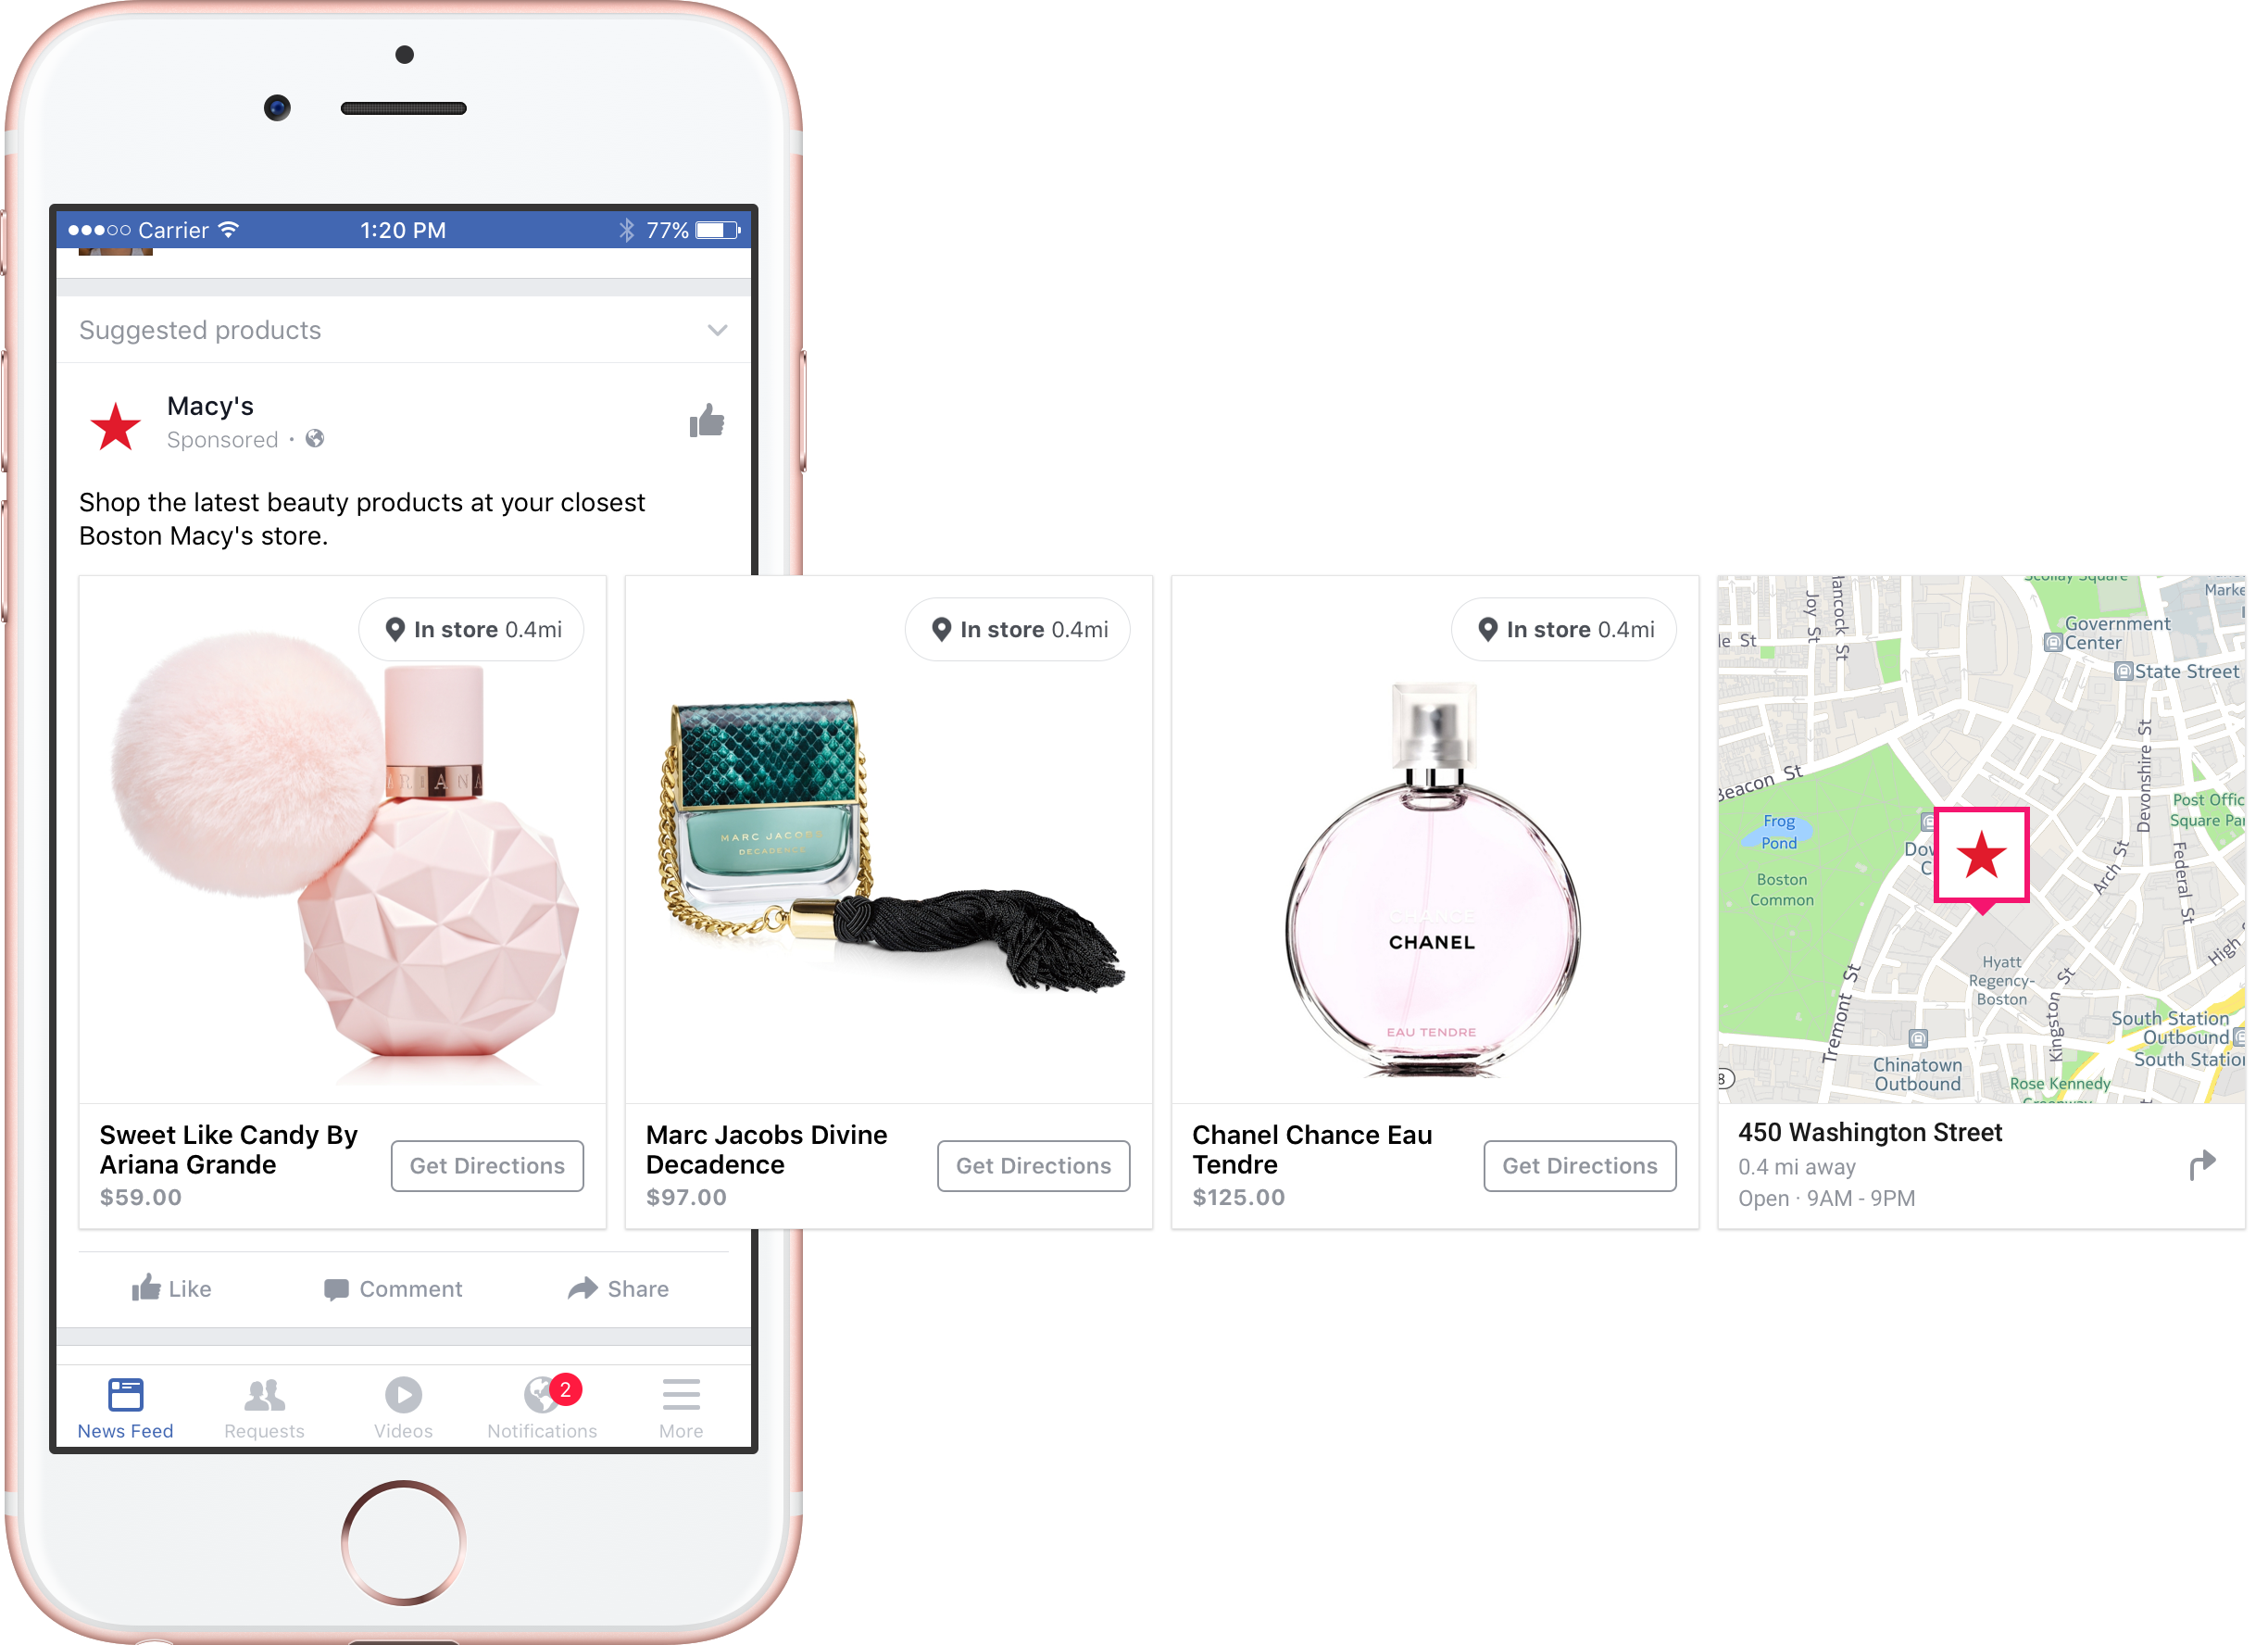 Facebook Introduces New Ad Options Focused on Driving In-Store Actions | Social Media Today